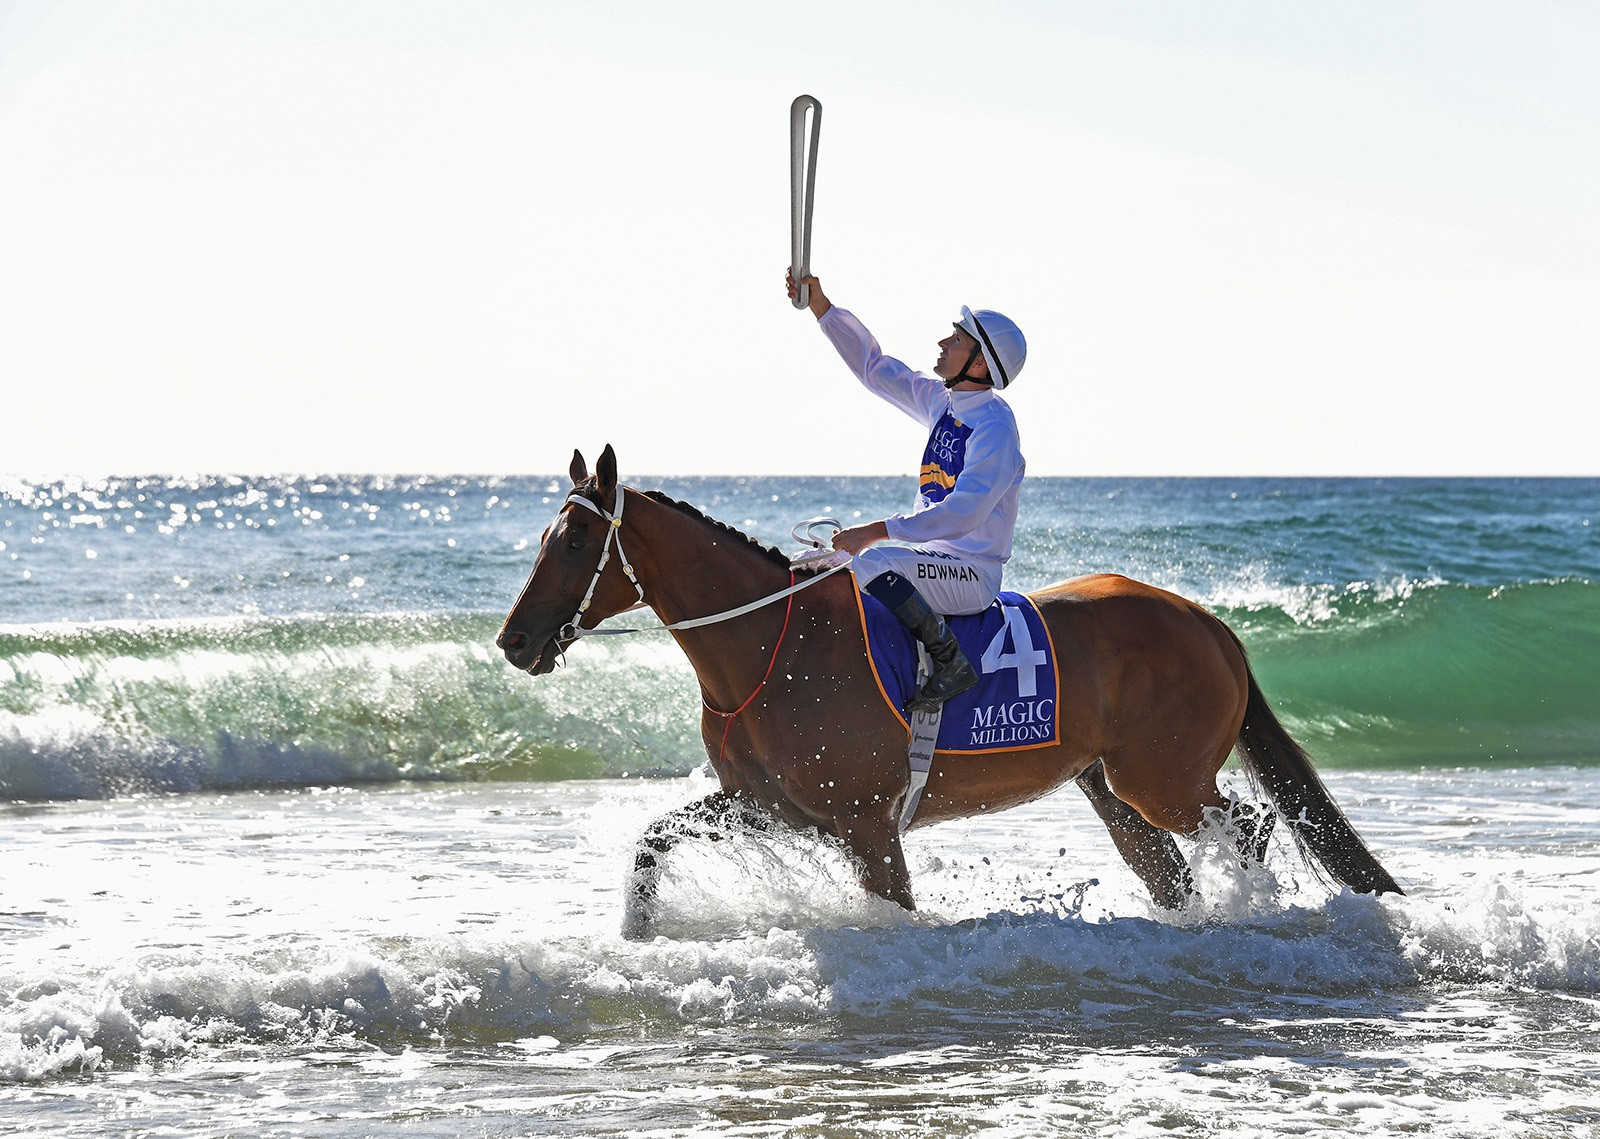 Queen's Baton makes first appearance in Gold Coast at Magic Millions Barrier Draw